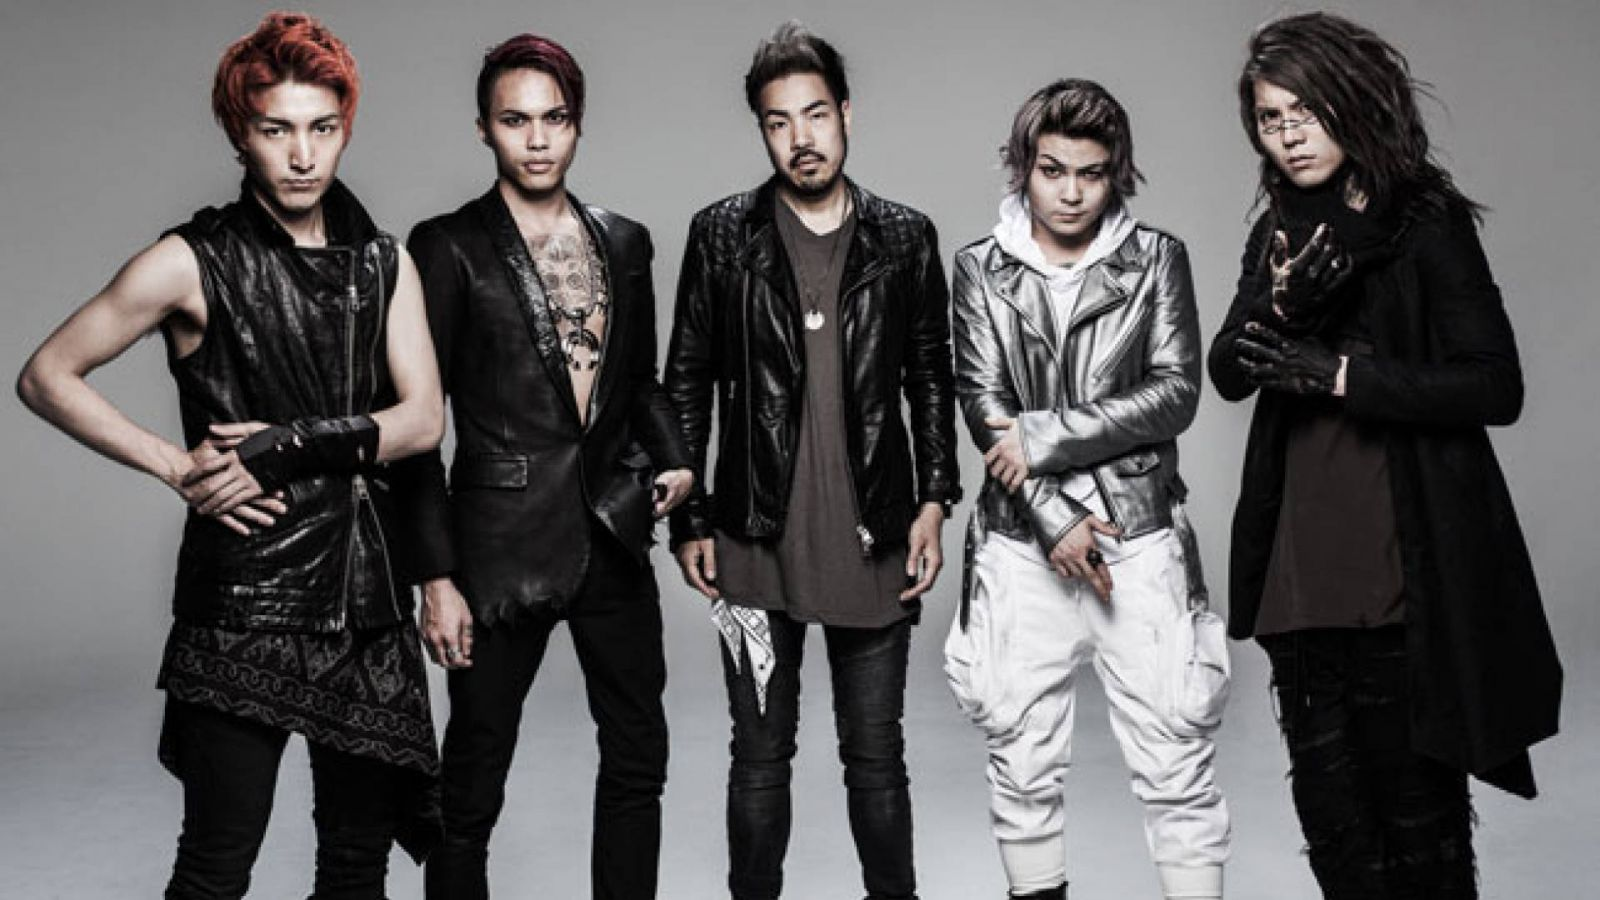 CROSSFAITH © CROSSFAITH. All rights reserved.